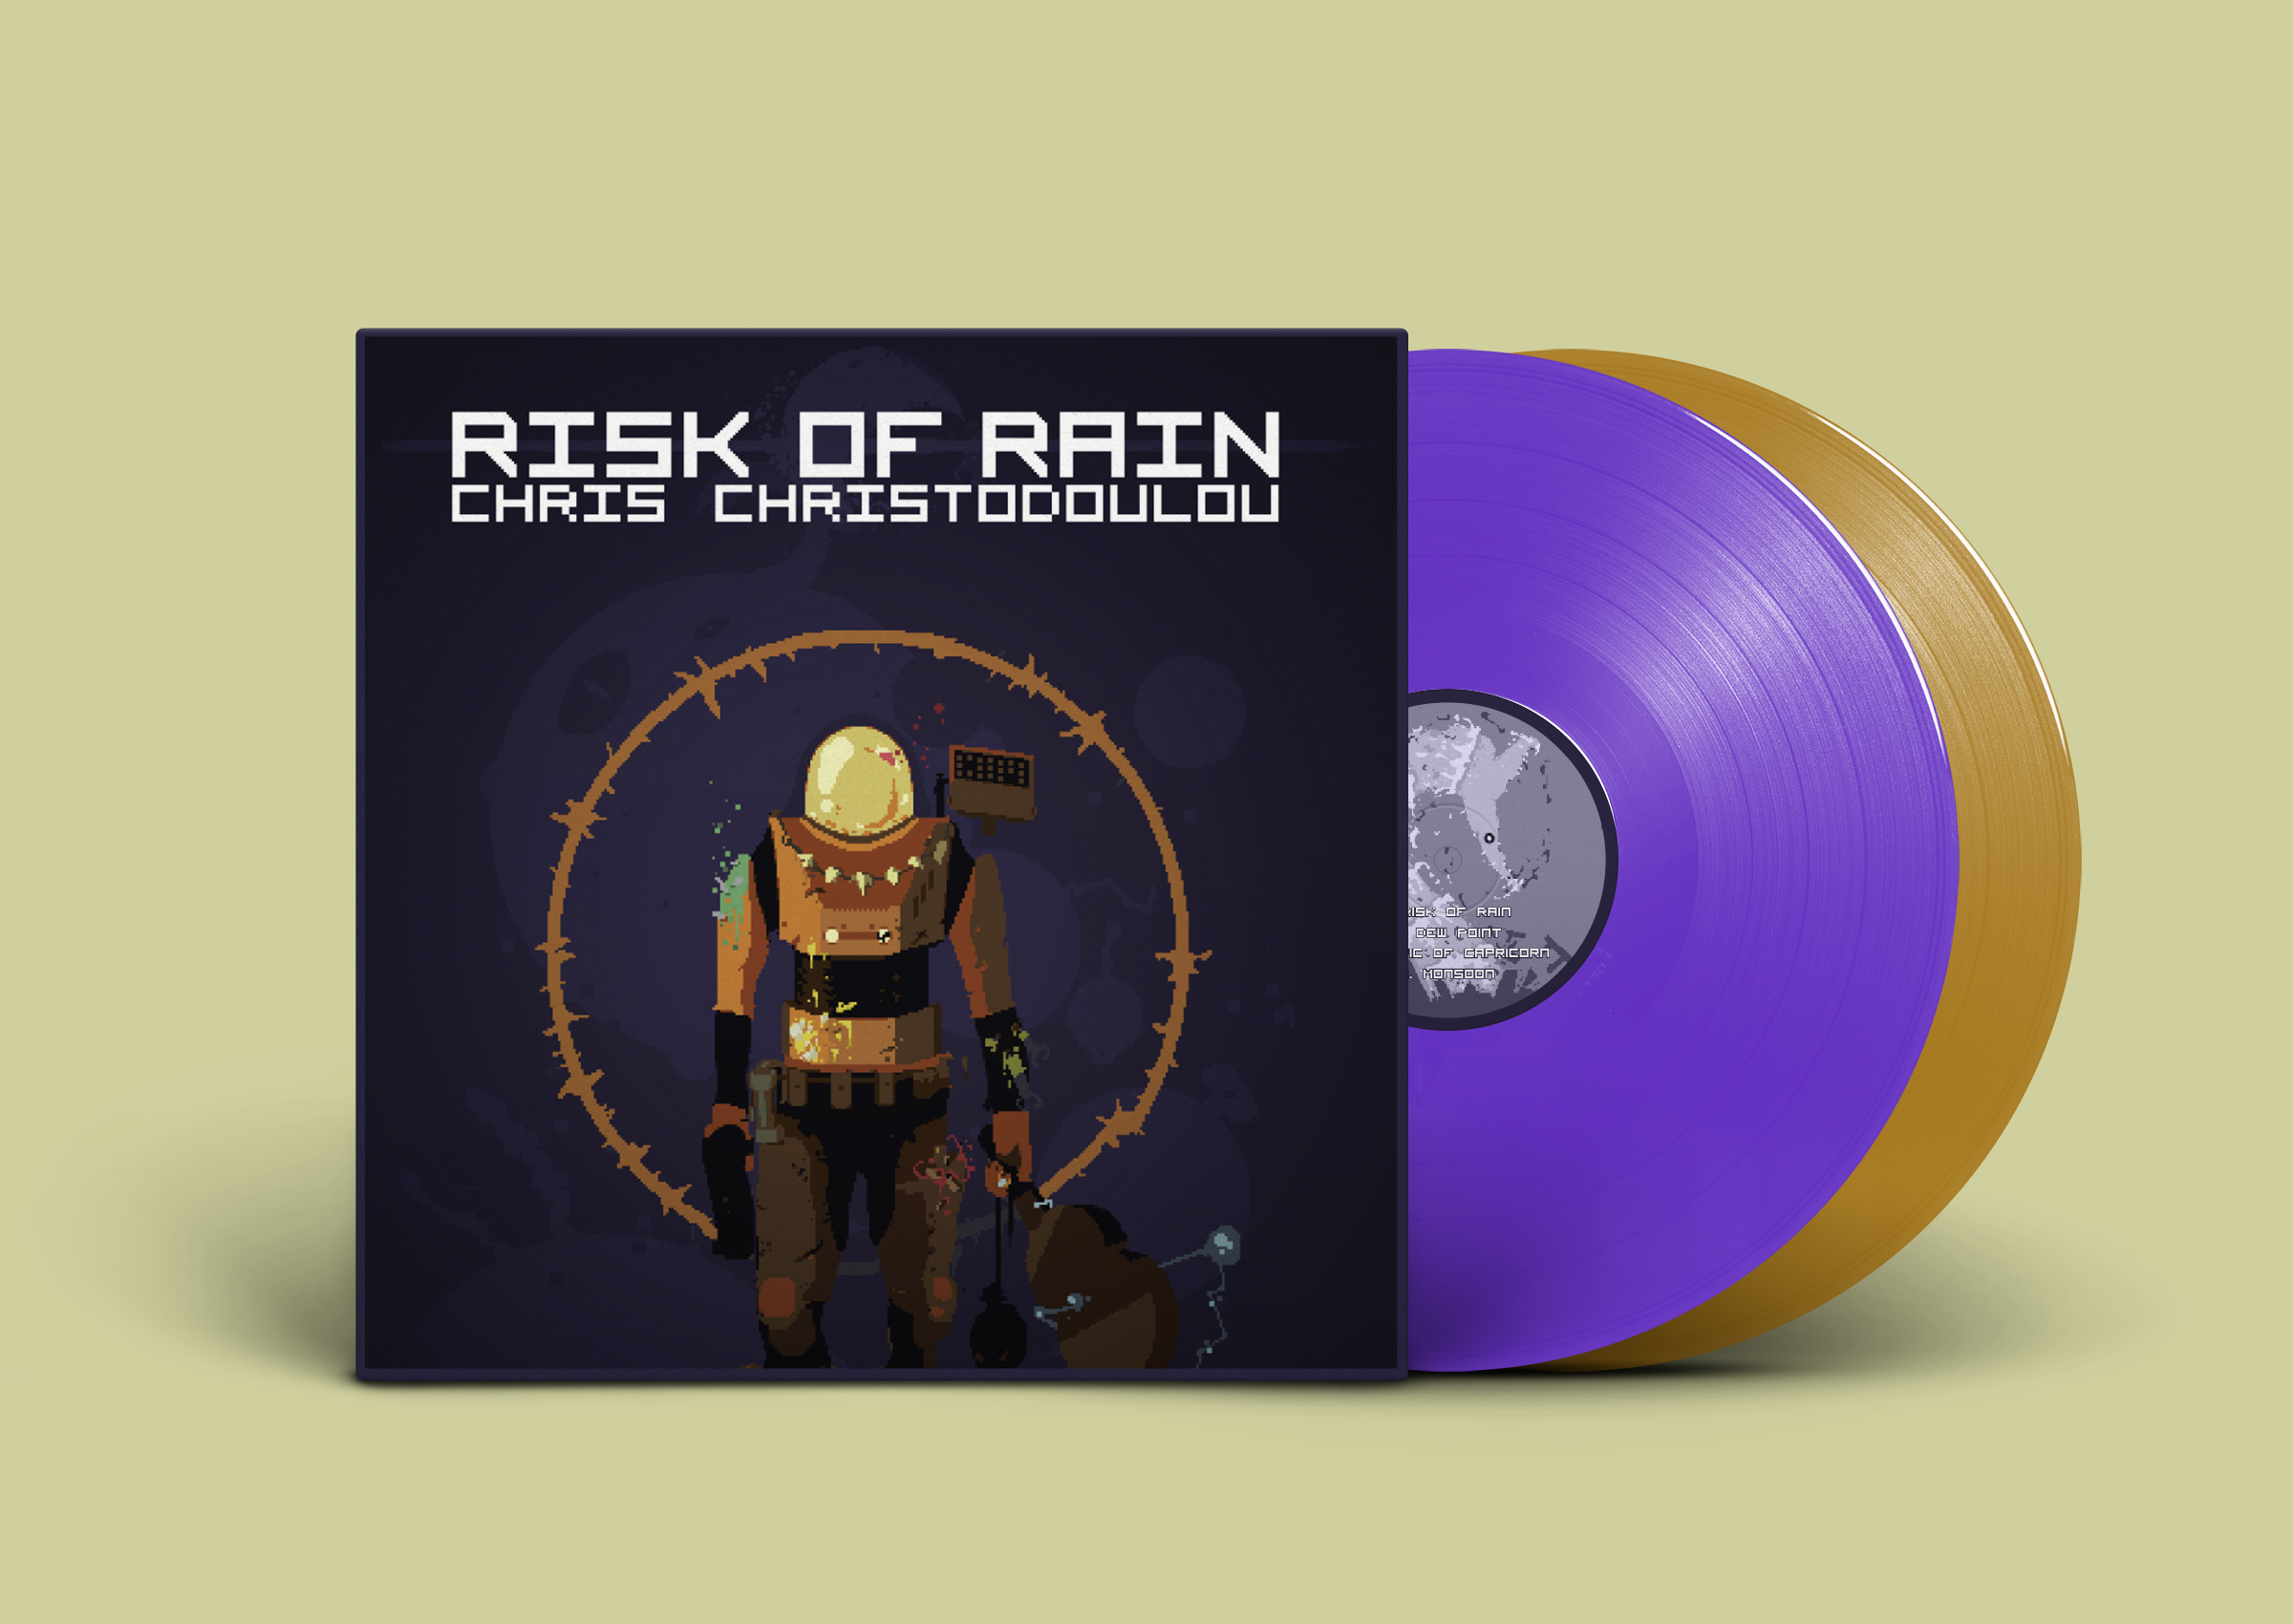 Risk Of Rain - Cover + Records Mockup